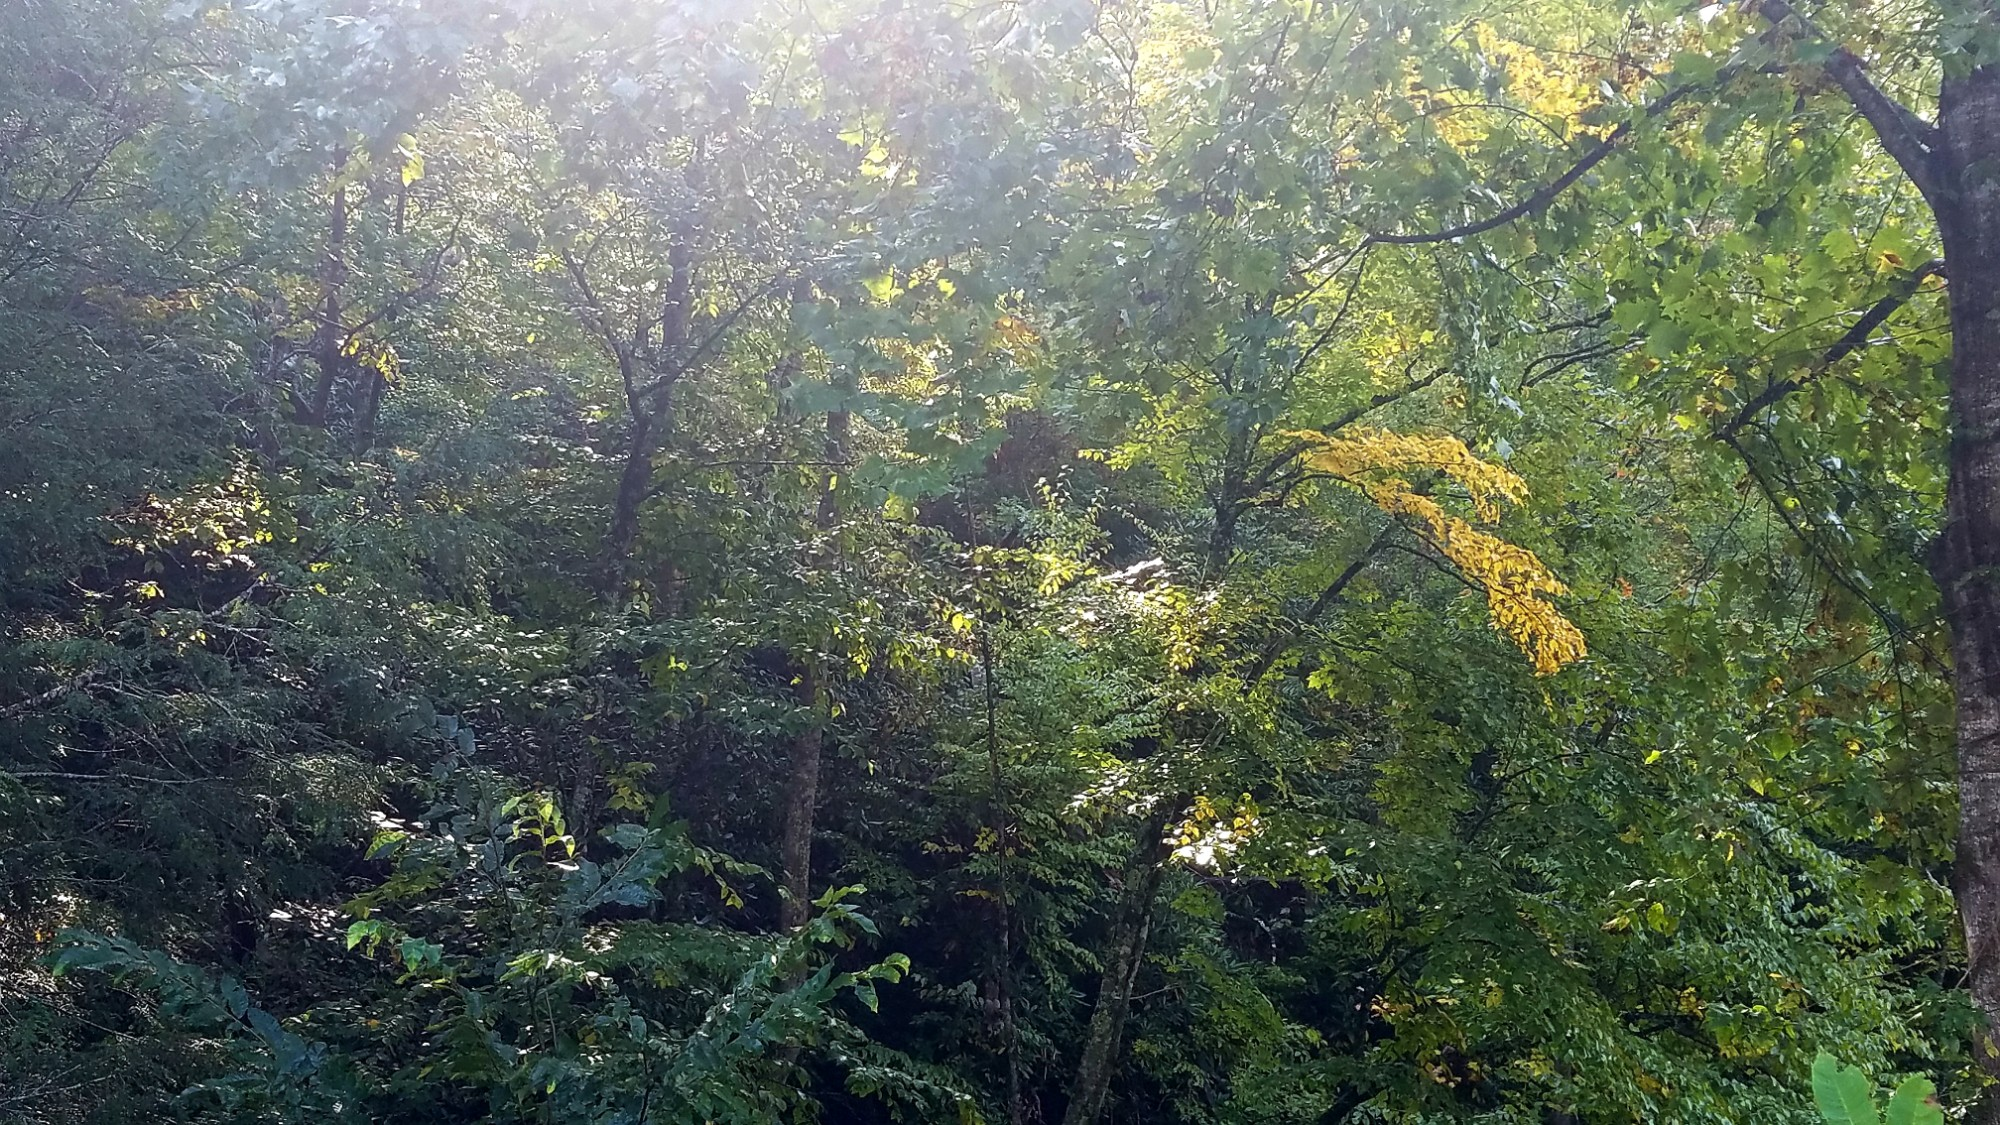 Sunshine shining through a wooded hillside covered in leafy trees, some of which are showing fall color